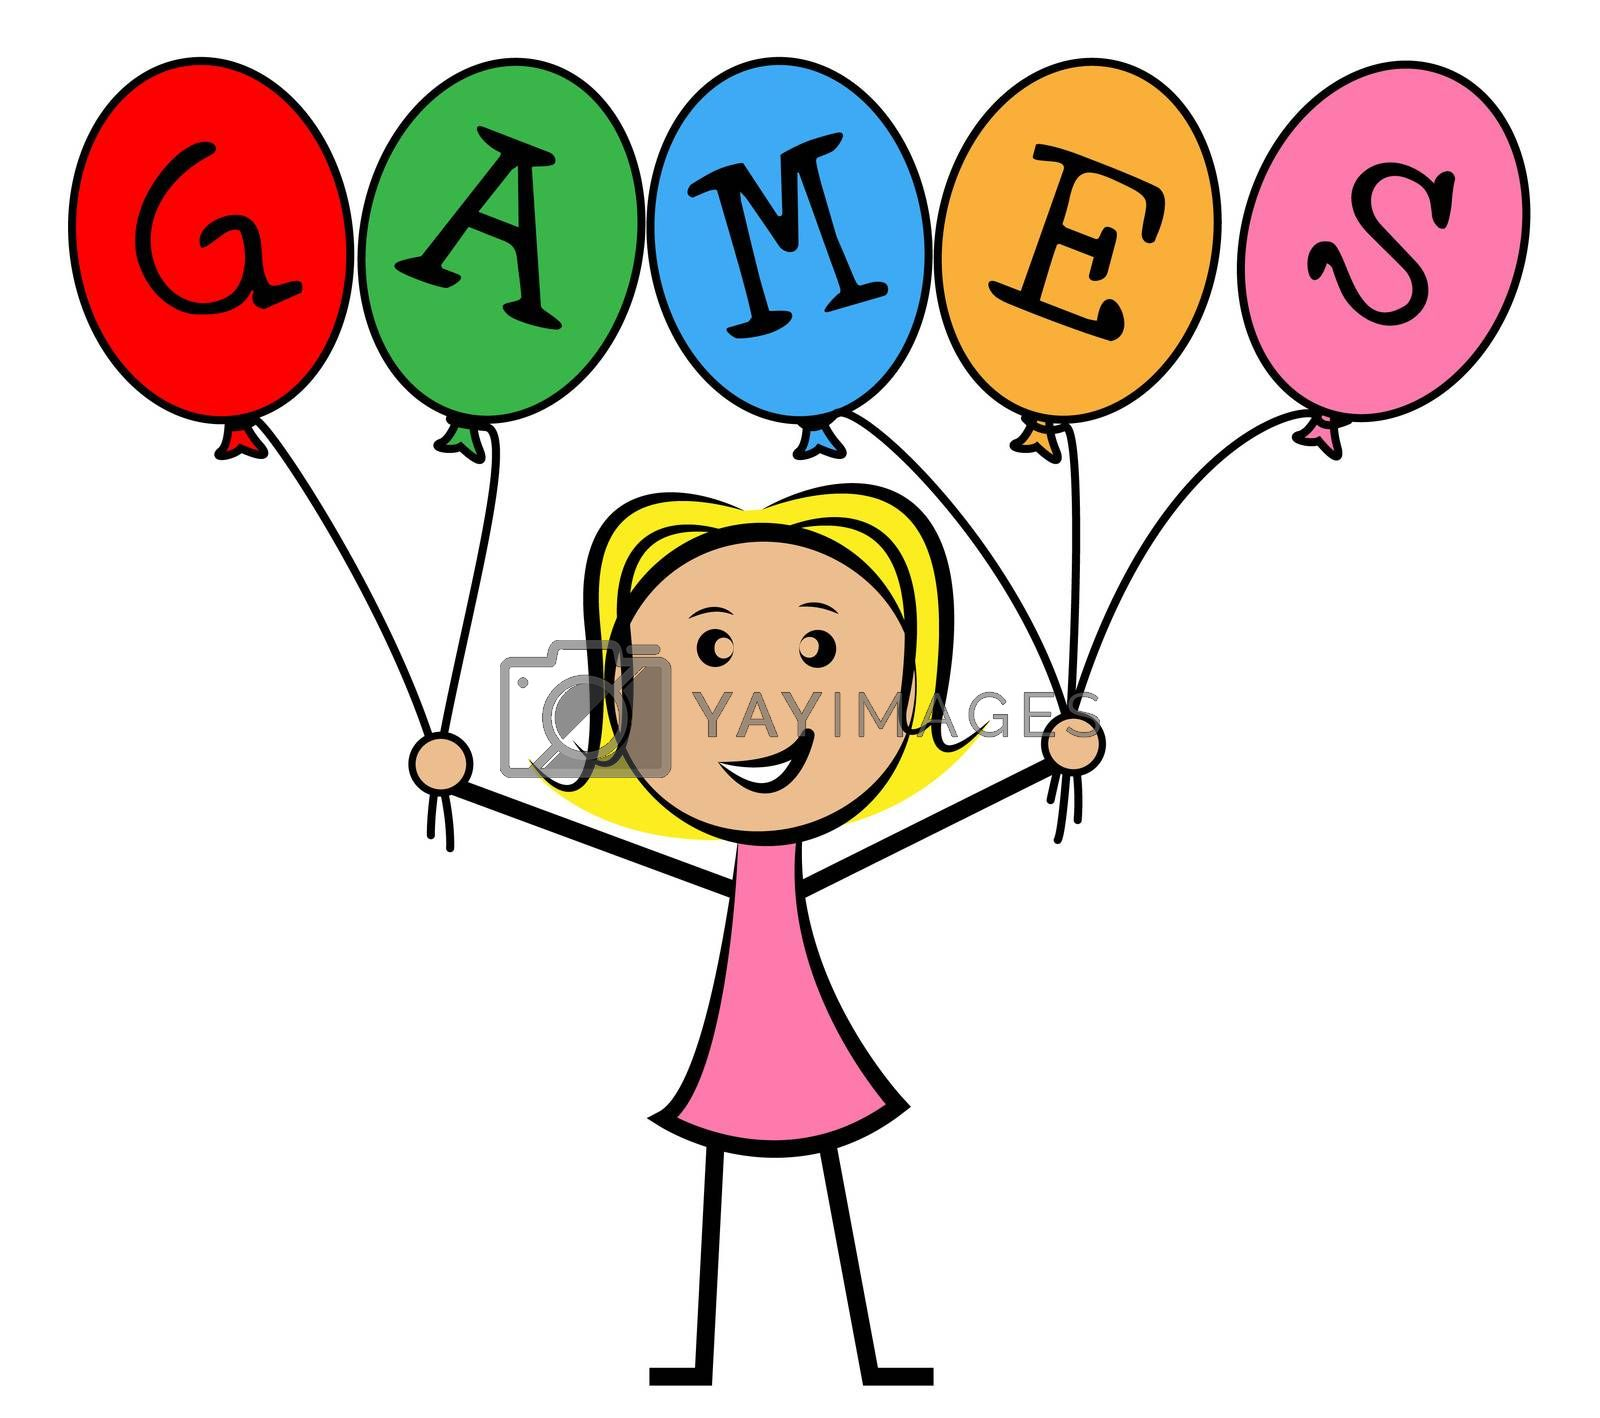 Games Balloons Represents Young Woman And Kids by stuartmiles